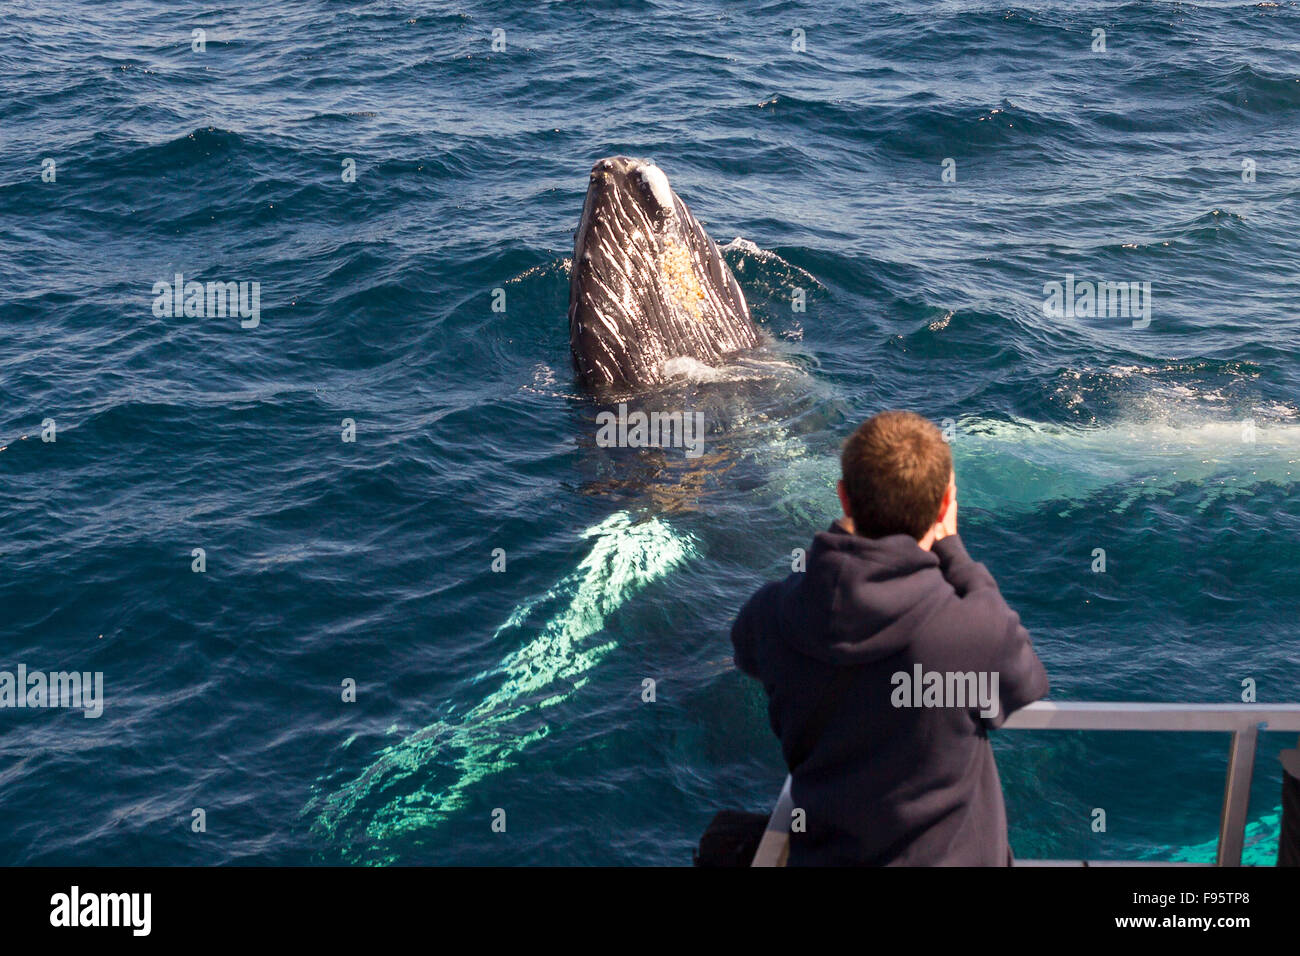 Humpback Whale spyhopping, (Megaptera novaeangliae), while whale watcher takes his photograph, Witless Bay Ecological - Stock Image